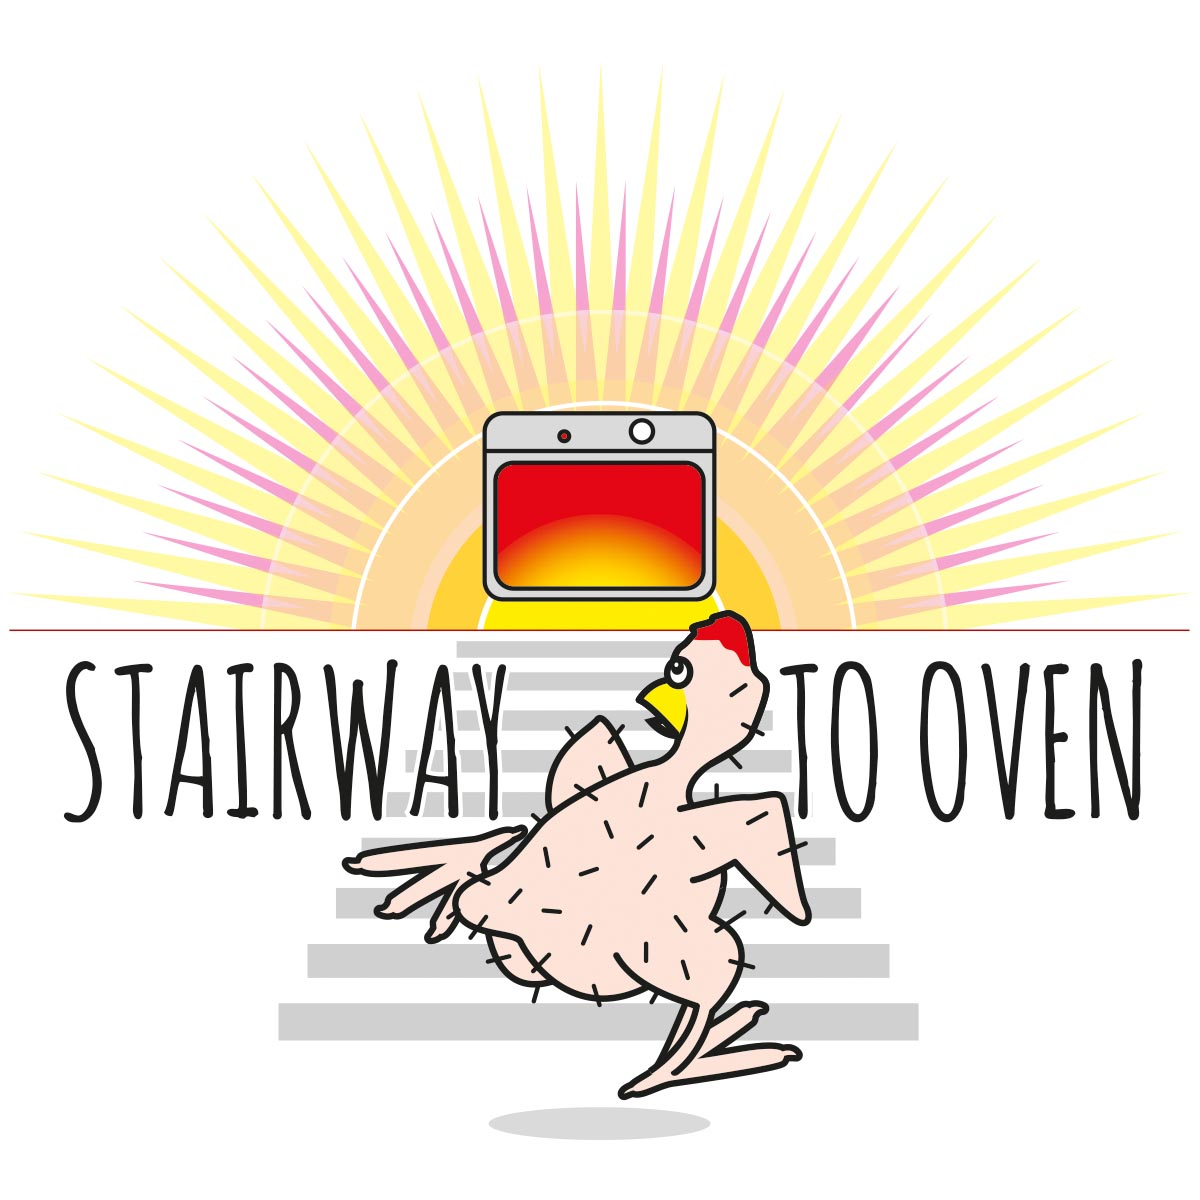 stairway_to_oven